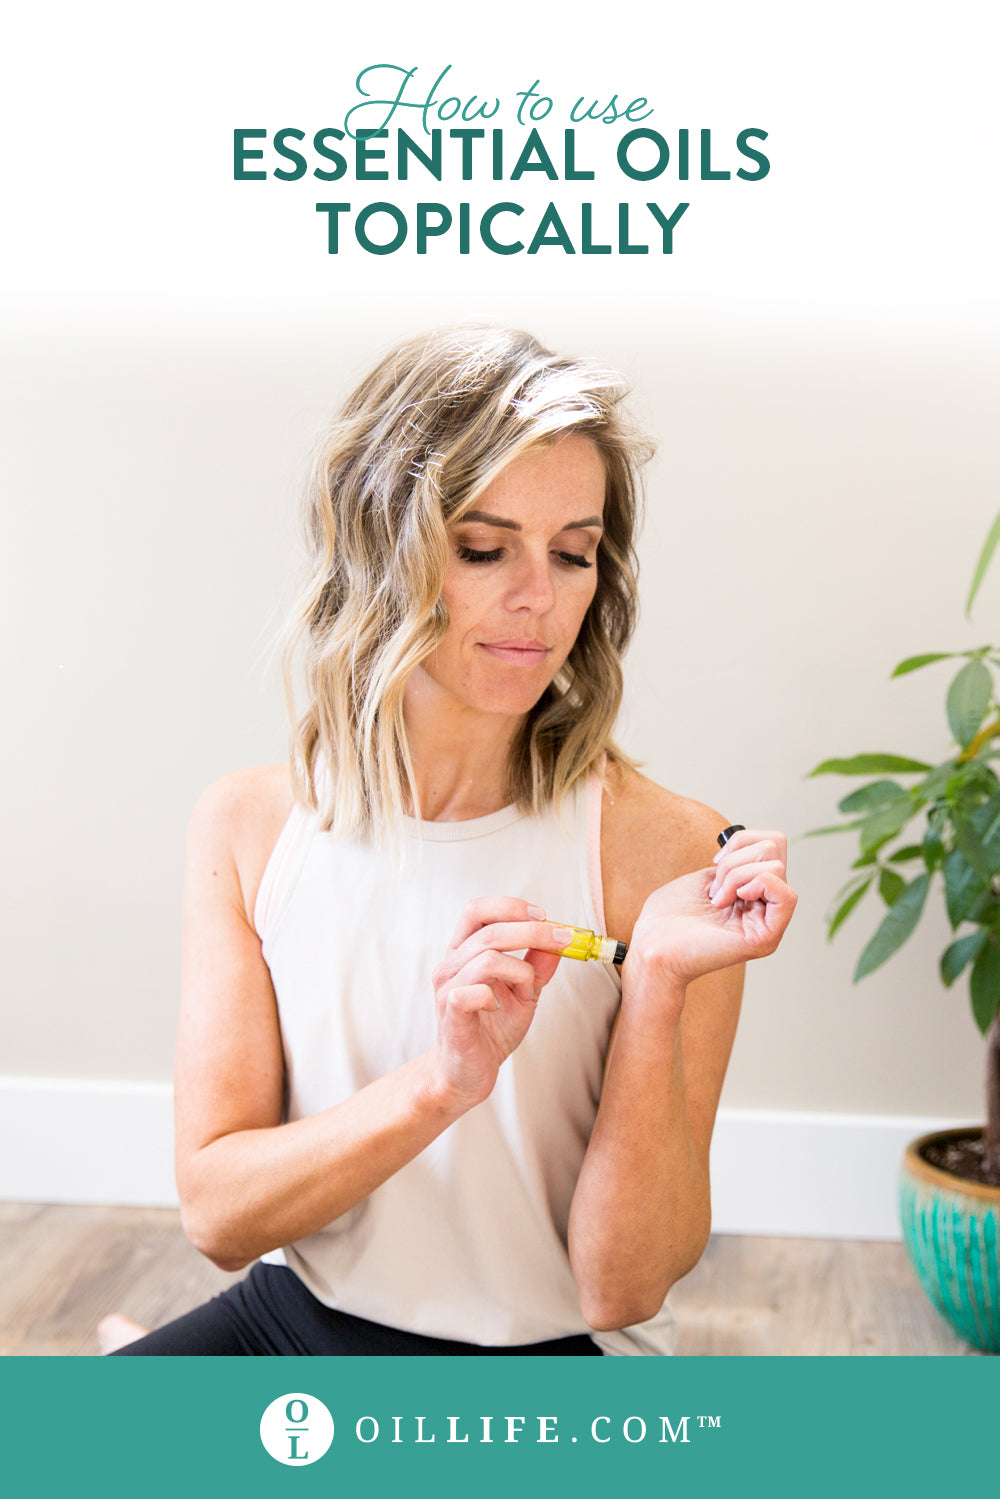 How To Use & Apply Essential Oils Topically